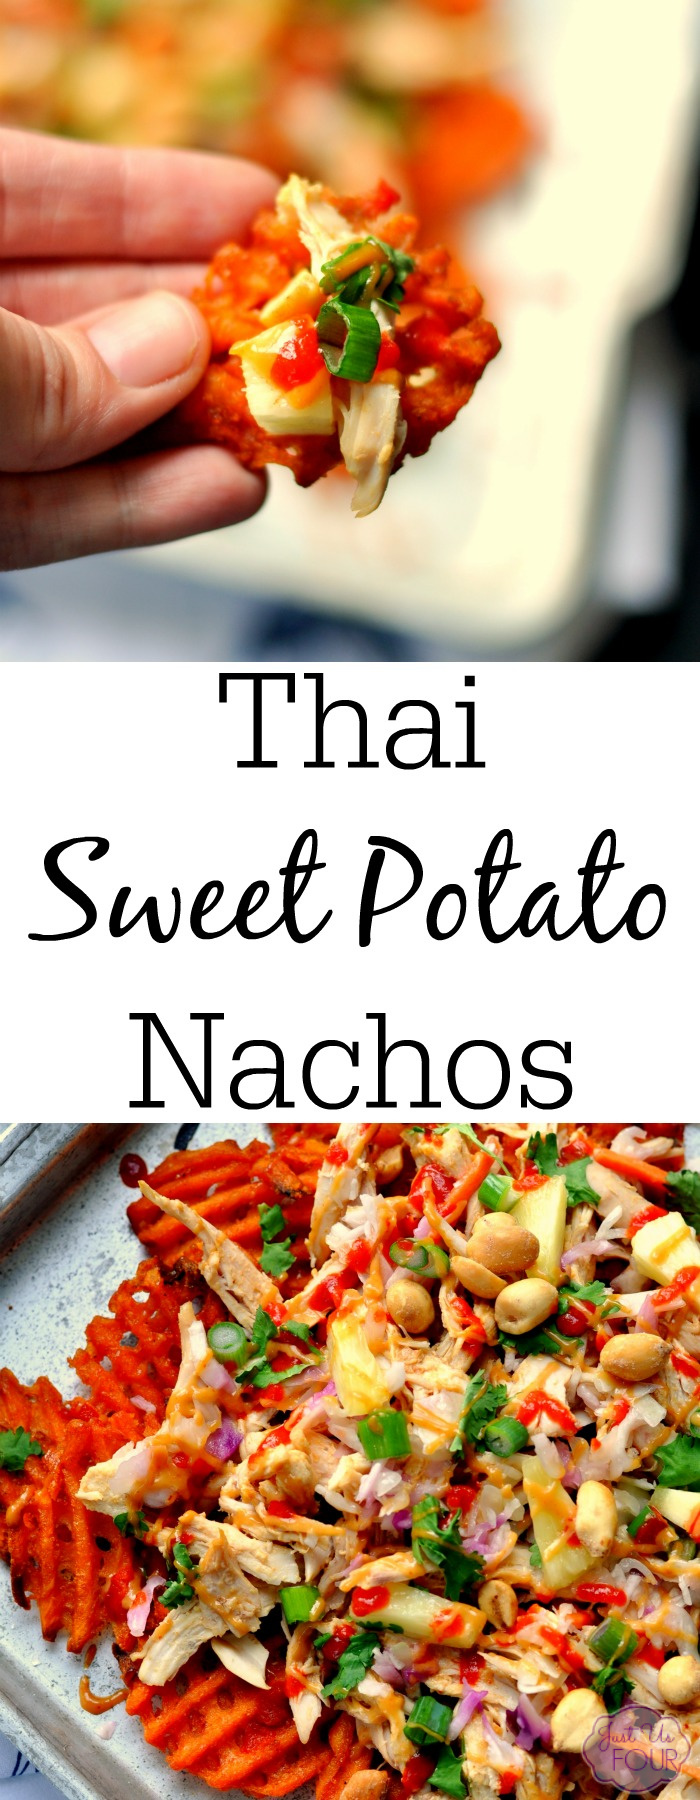 Thai sweet potato nachos are full of flavor and a great alternative to the traditional potato variety.